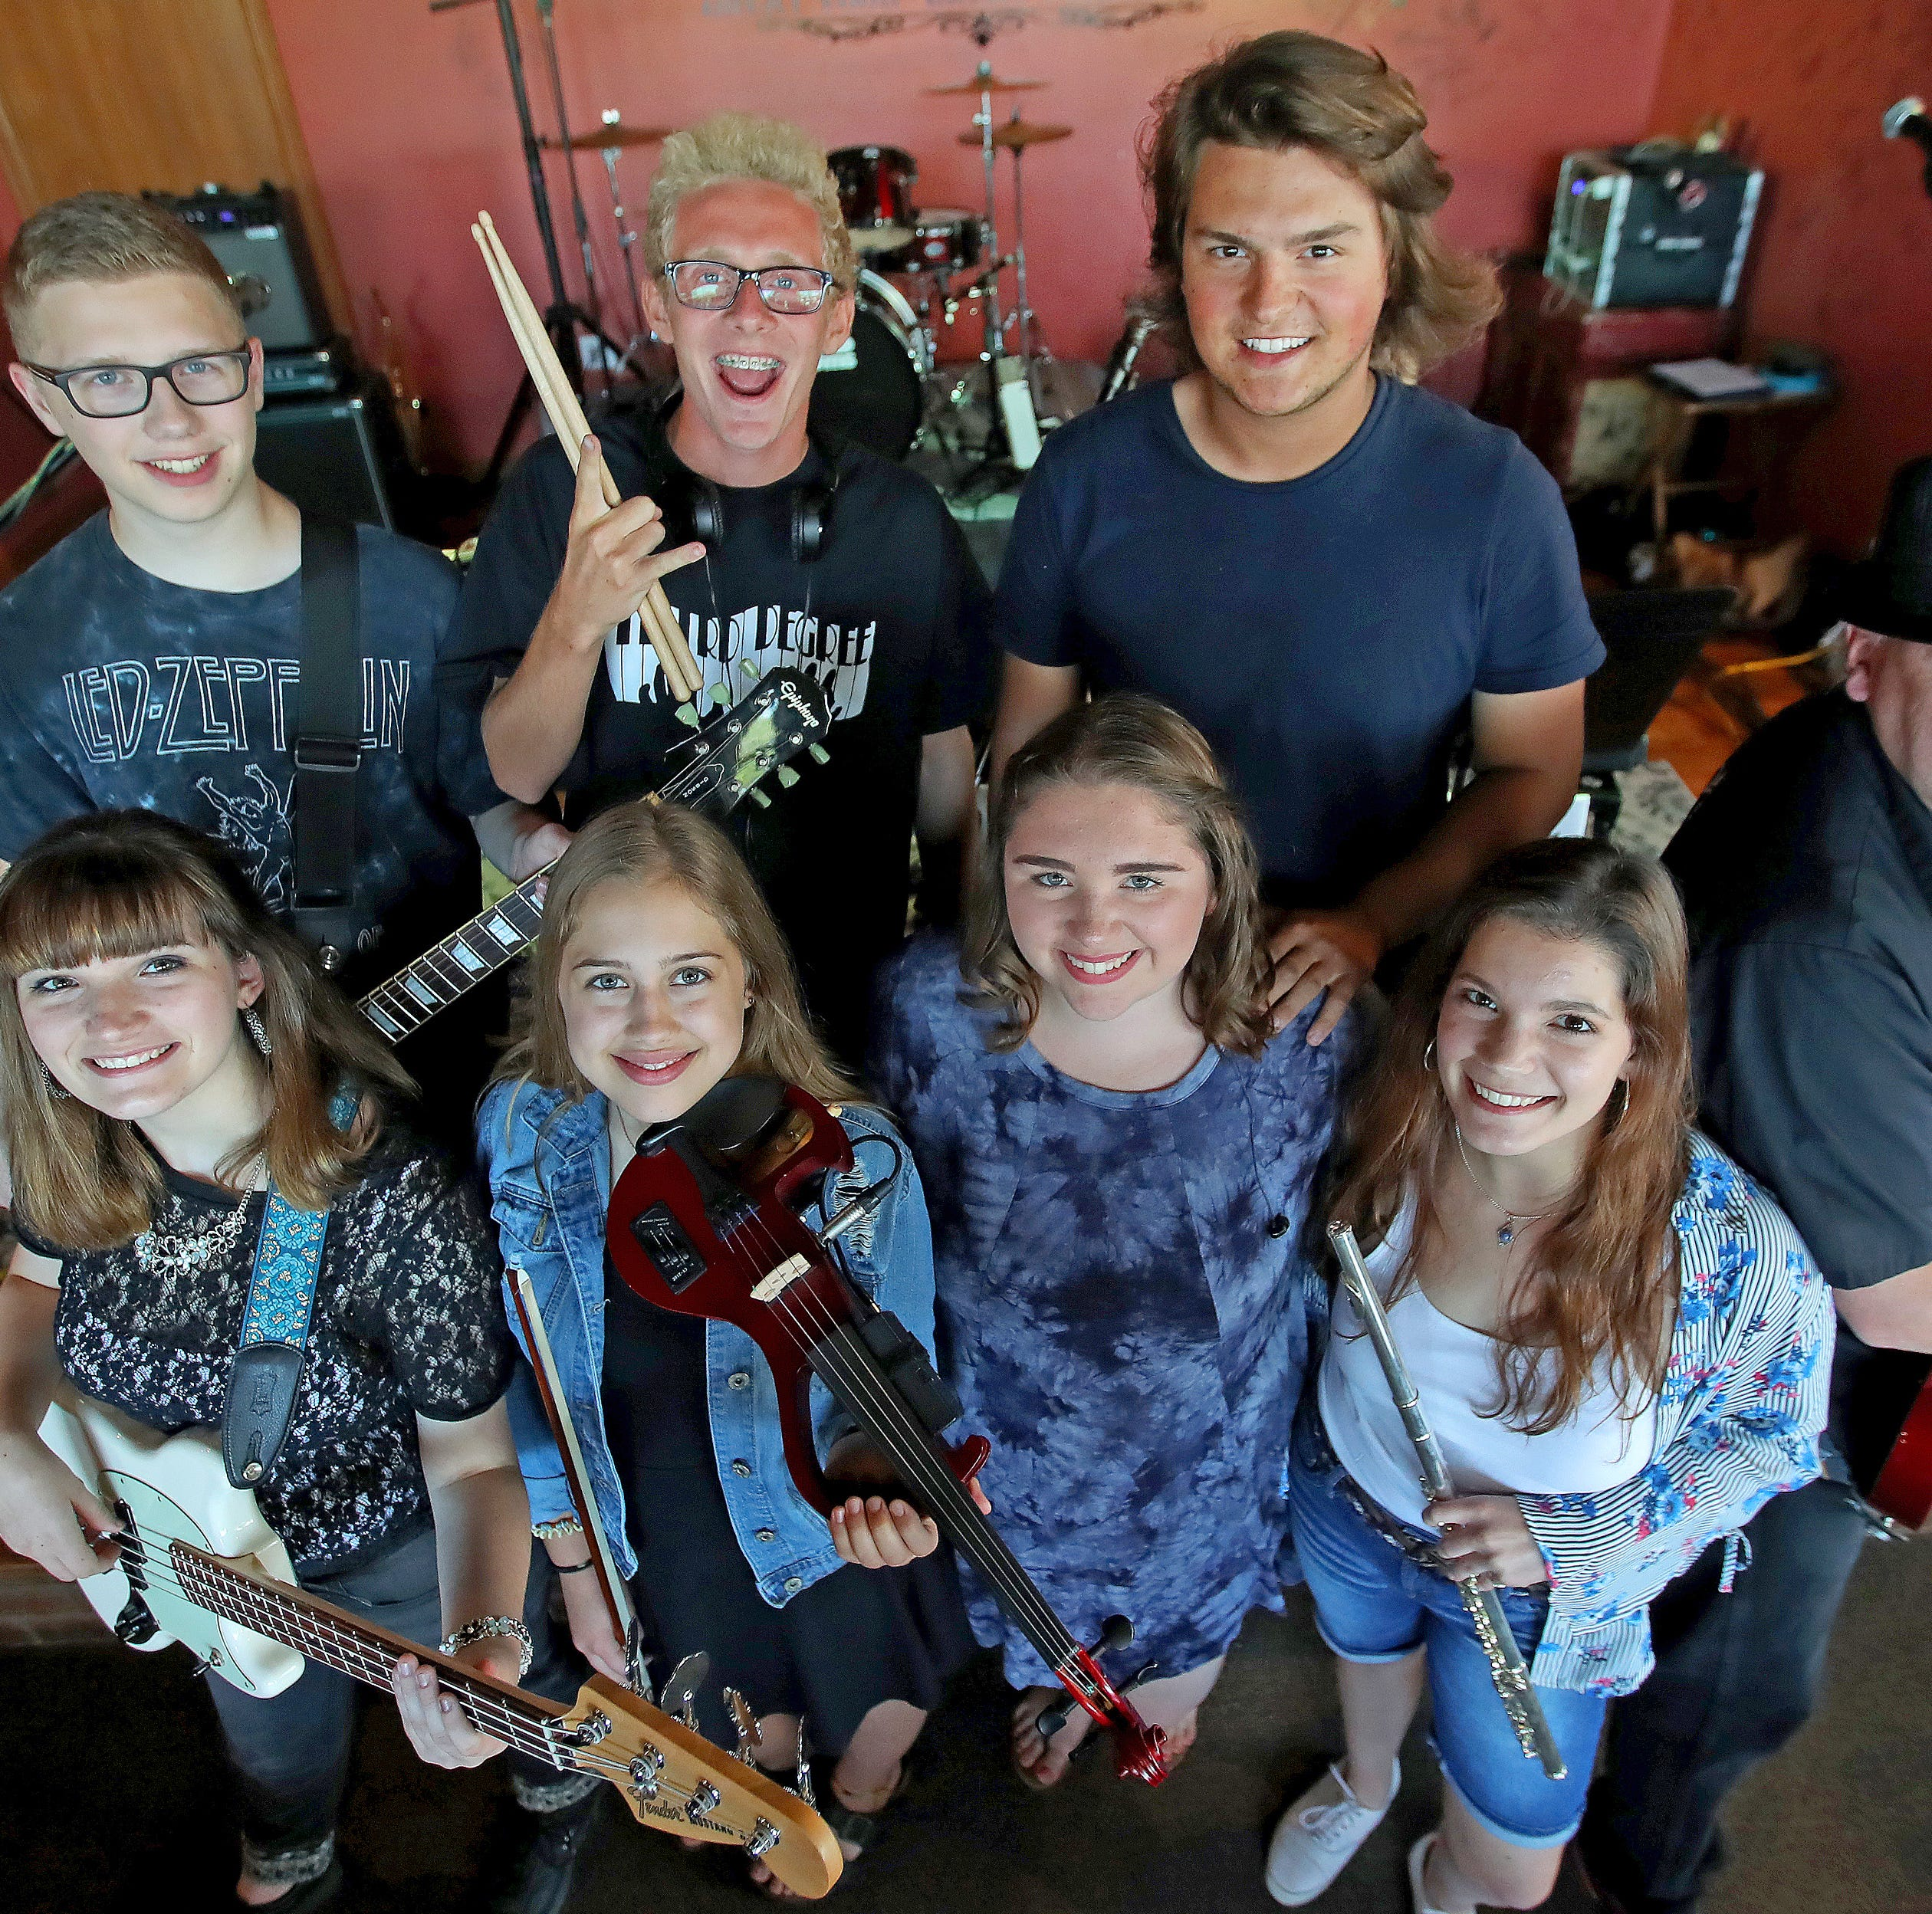 Ashwaubenon's Third Degree band is 'School of Rock' come to life -- Dewey Finn and all